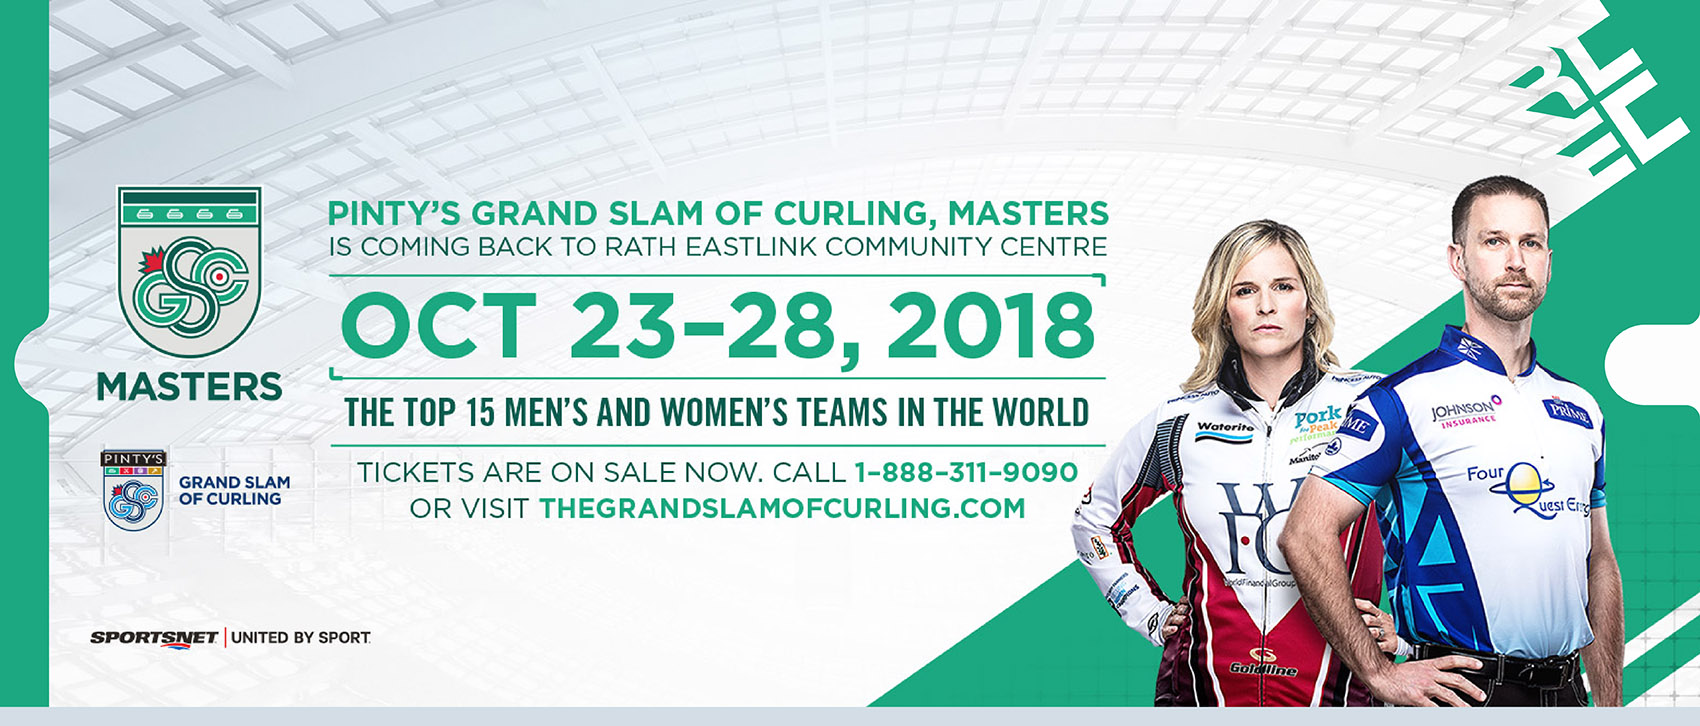 04-27-2018-GrandSlamCurling2018-Web-Slider